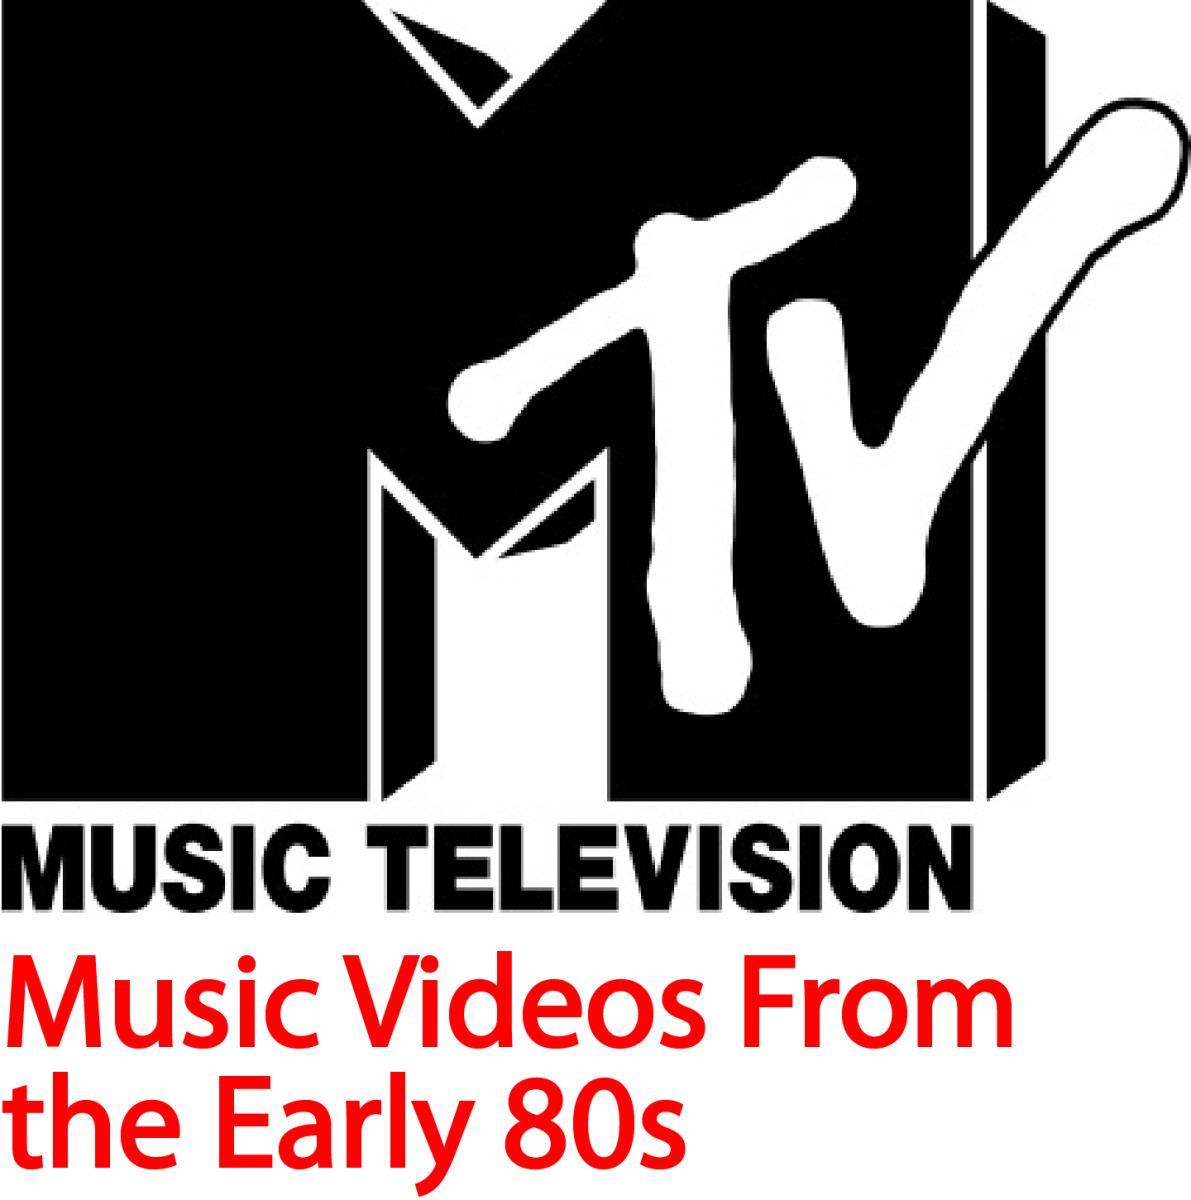 11 MTV Music Videos From the Early '80s